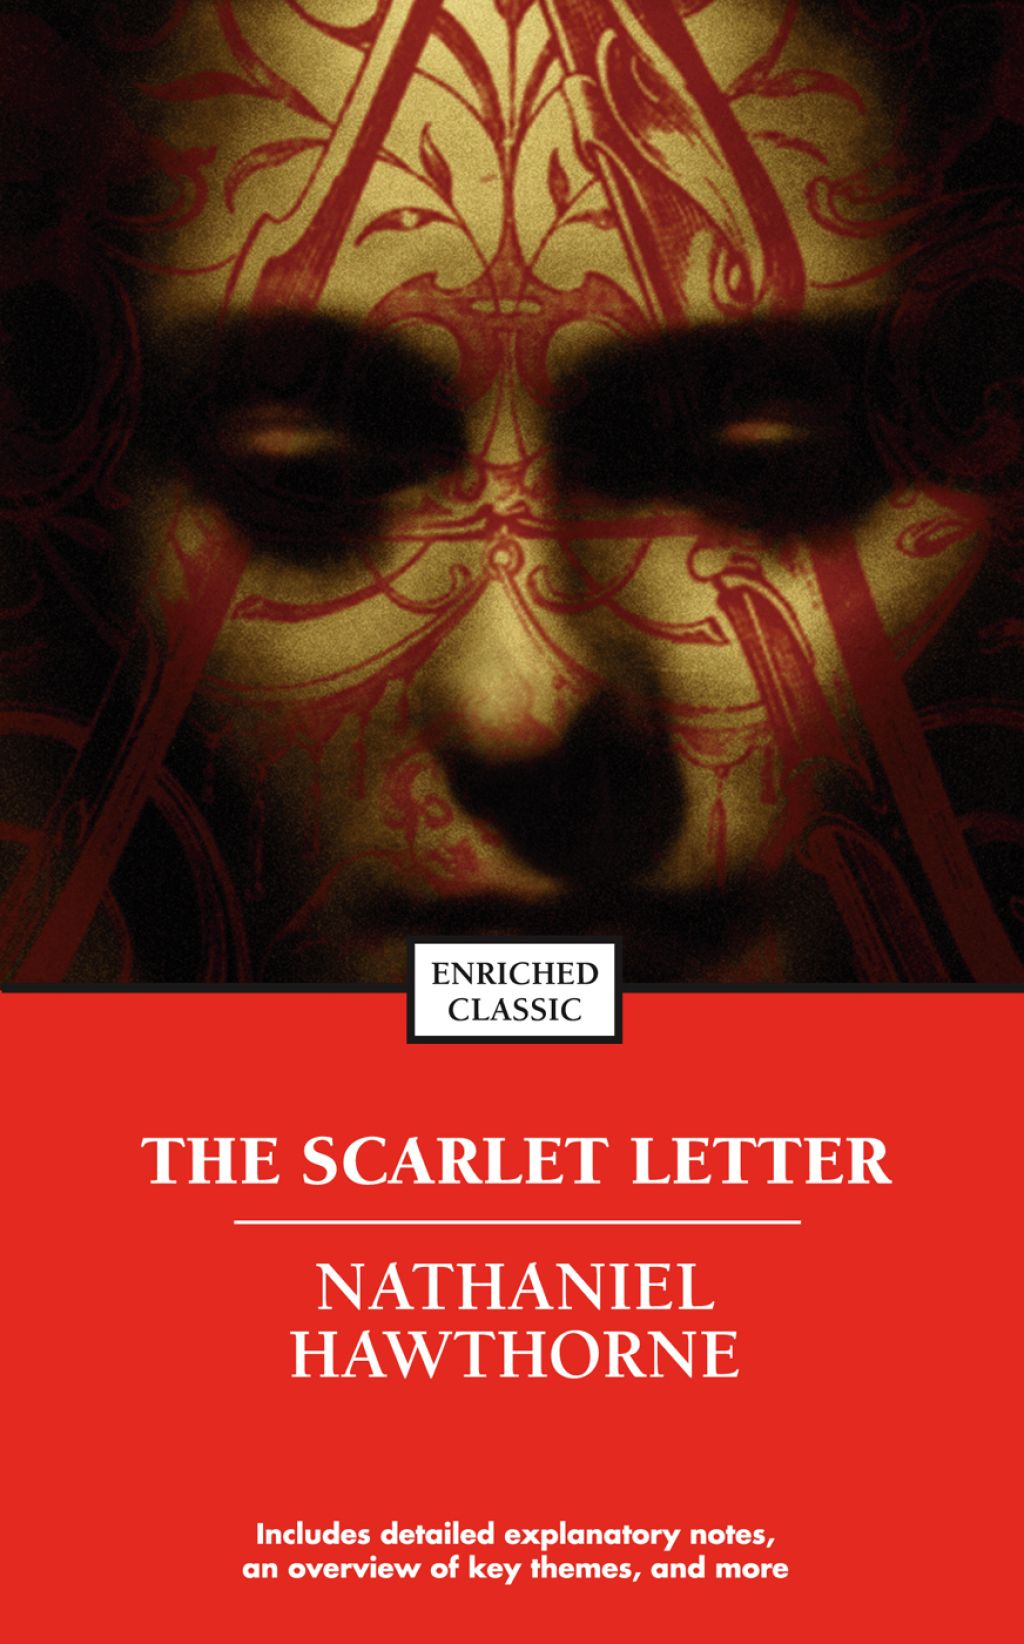 The Scarlet Letter (eBook) The scarlet letter book, Book